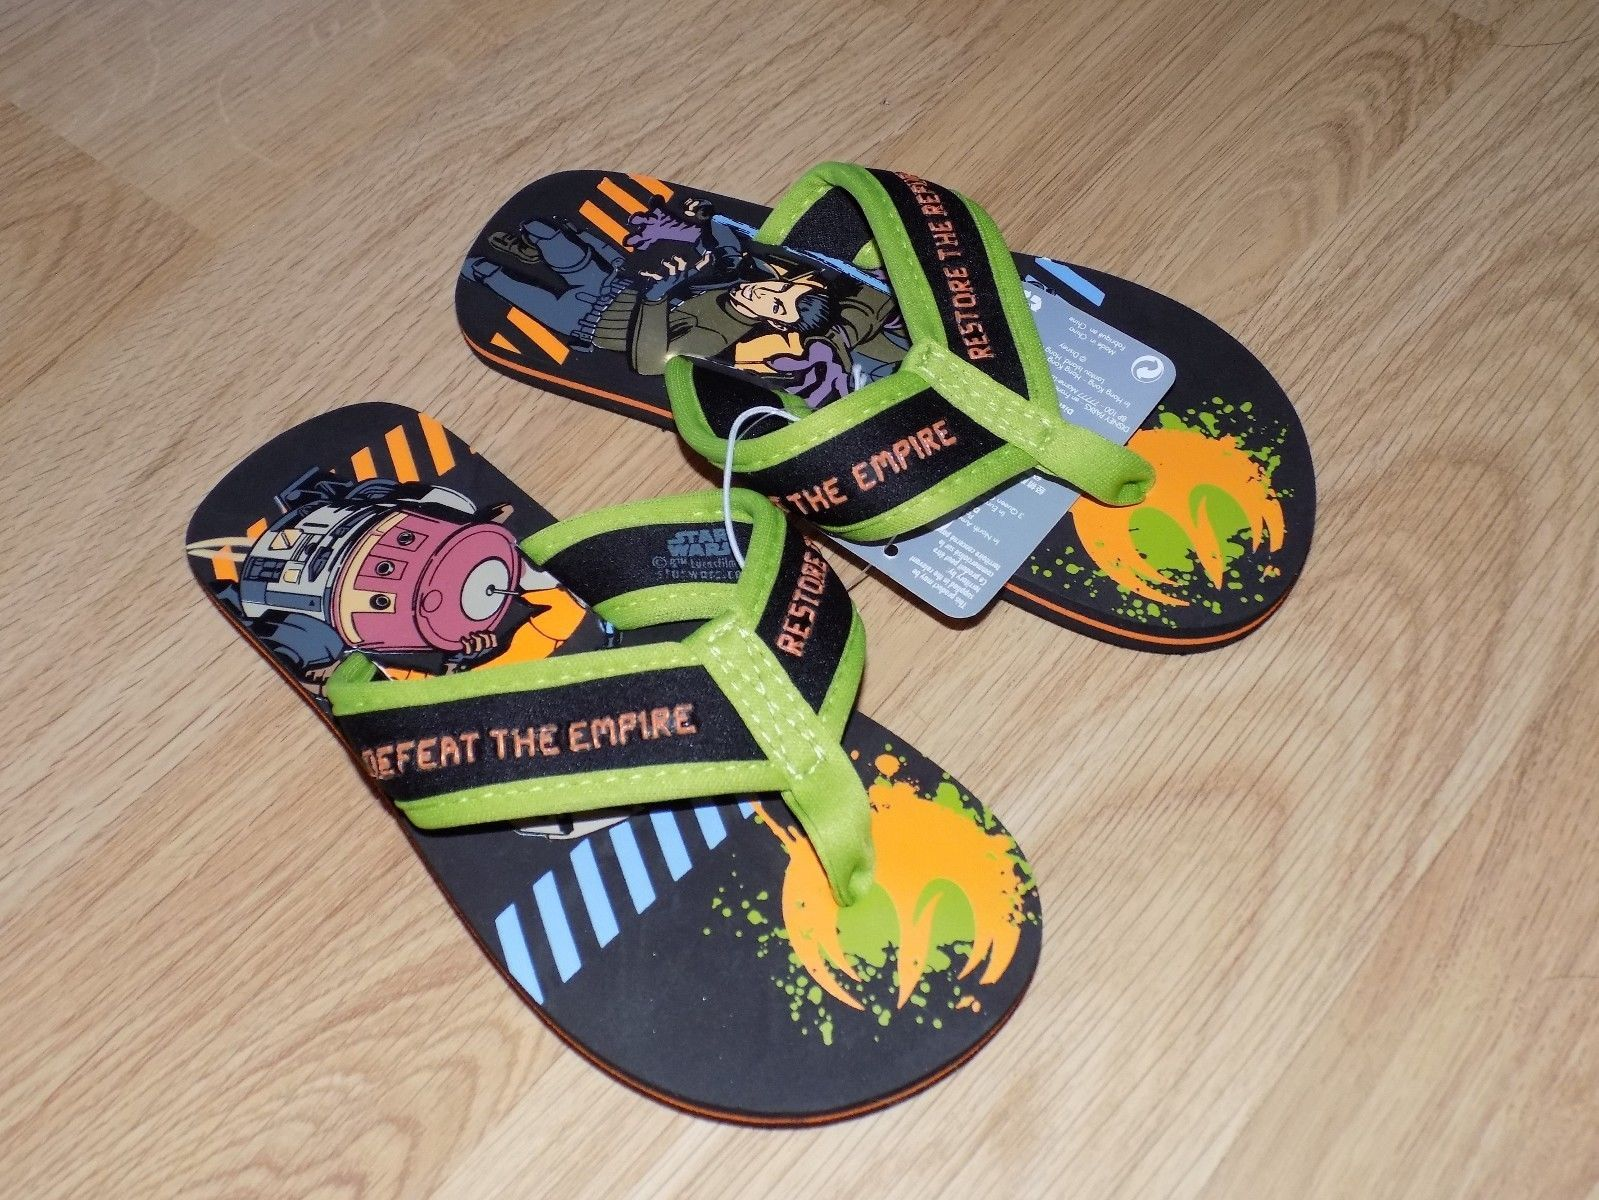 Boy's Size 9-10 Disney Store Star Wars Rebels Green Black Flip Flops Shoes New